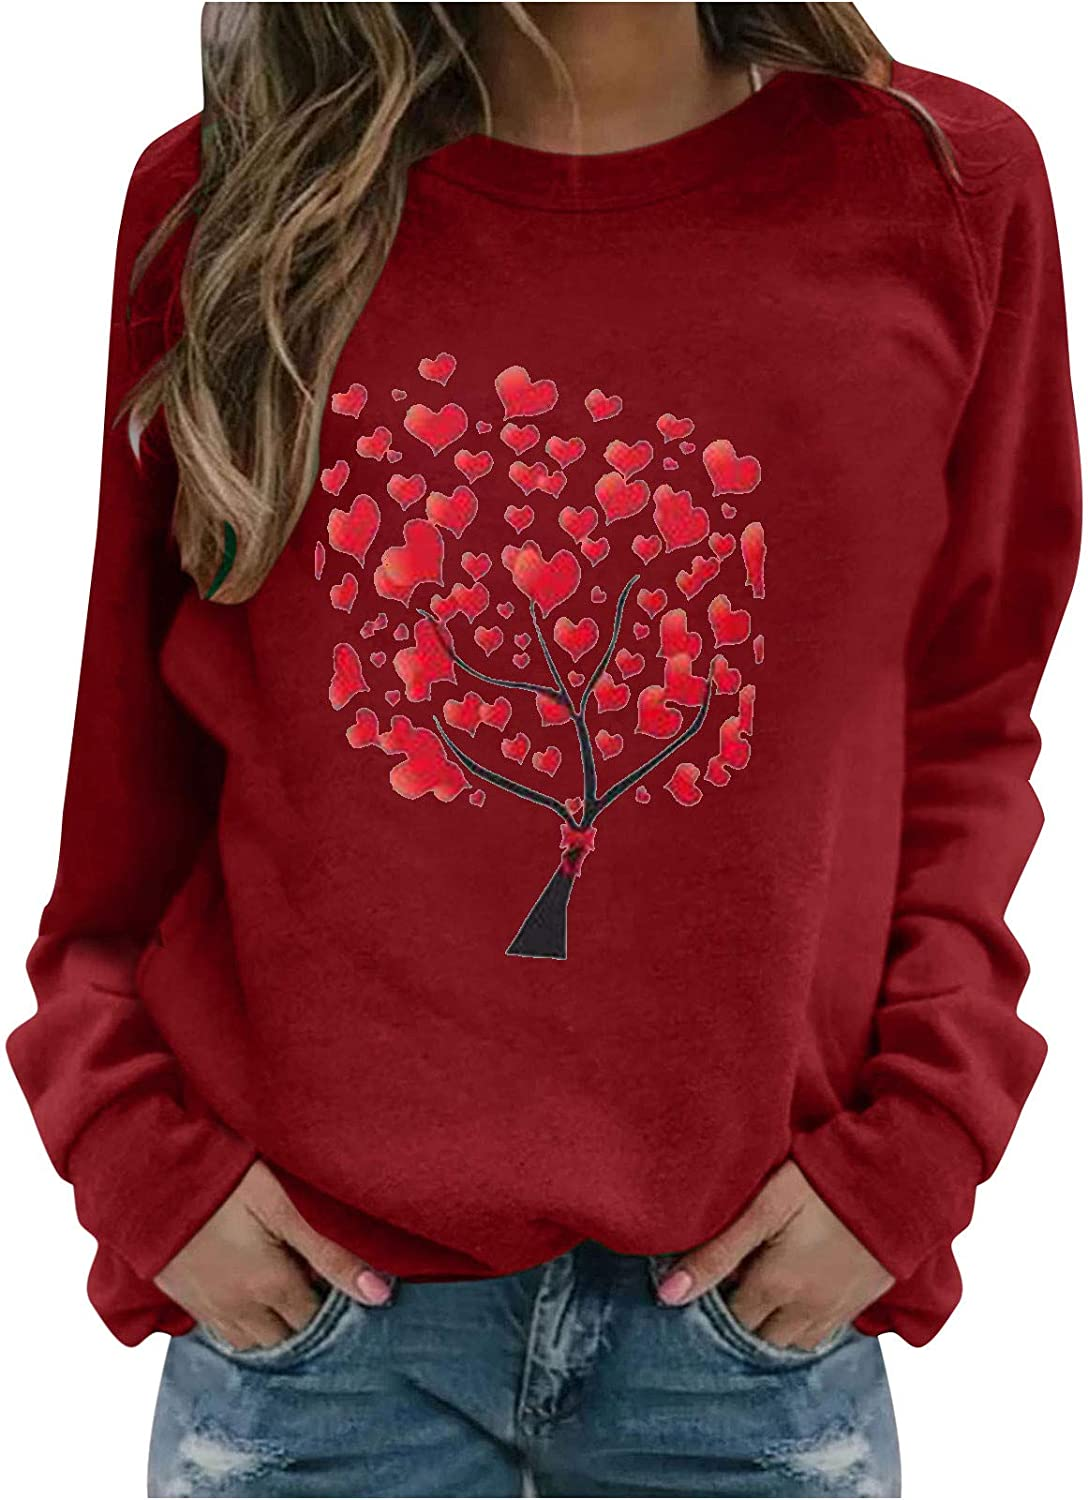 Hotkey Valentines Day Womens Sweatshirt Love Tree Printed Heart Graphic Tops Crewneck Long Sleeve Pullover Jumper Blouse